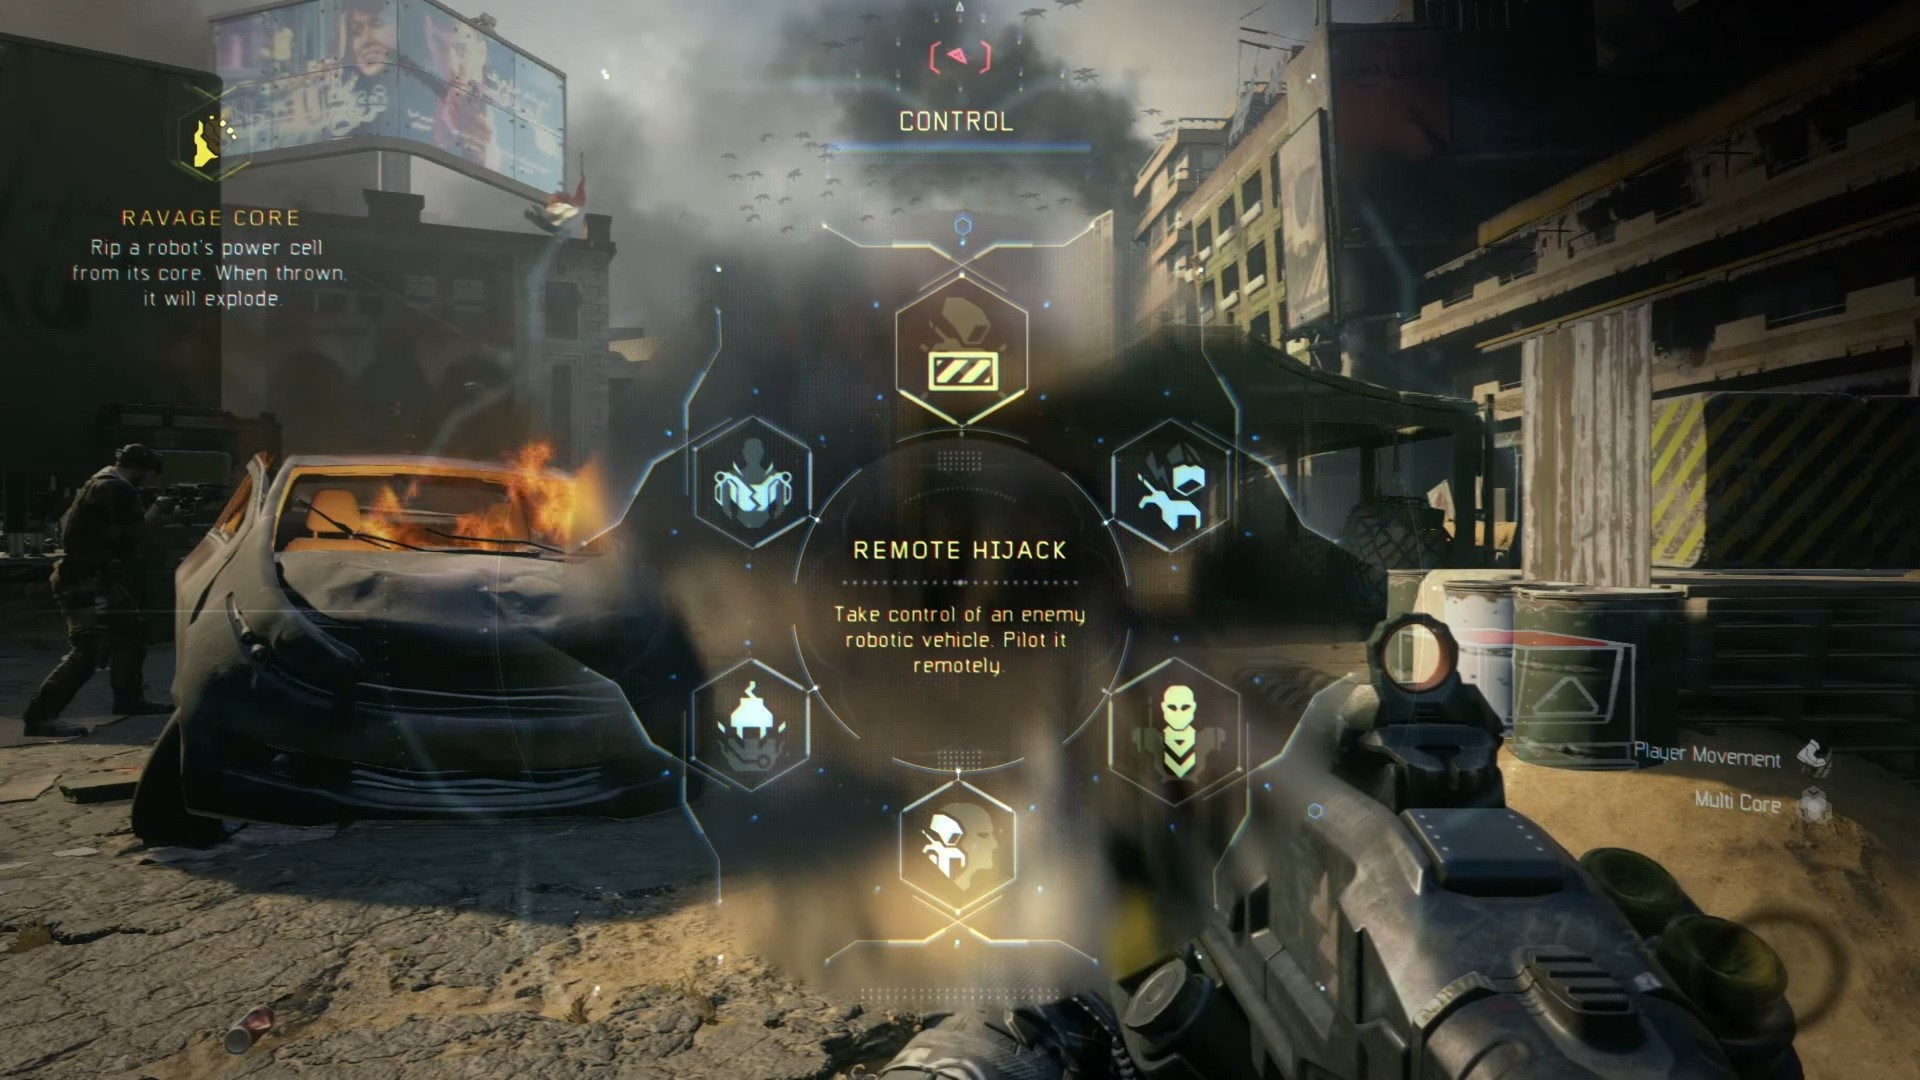 Game review: Call of Duty: Black Ops III is slick and modern